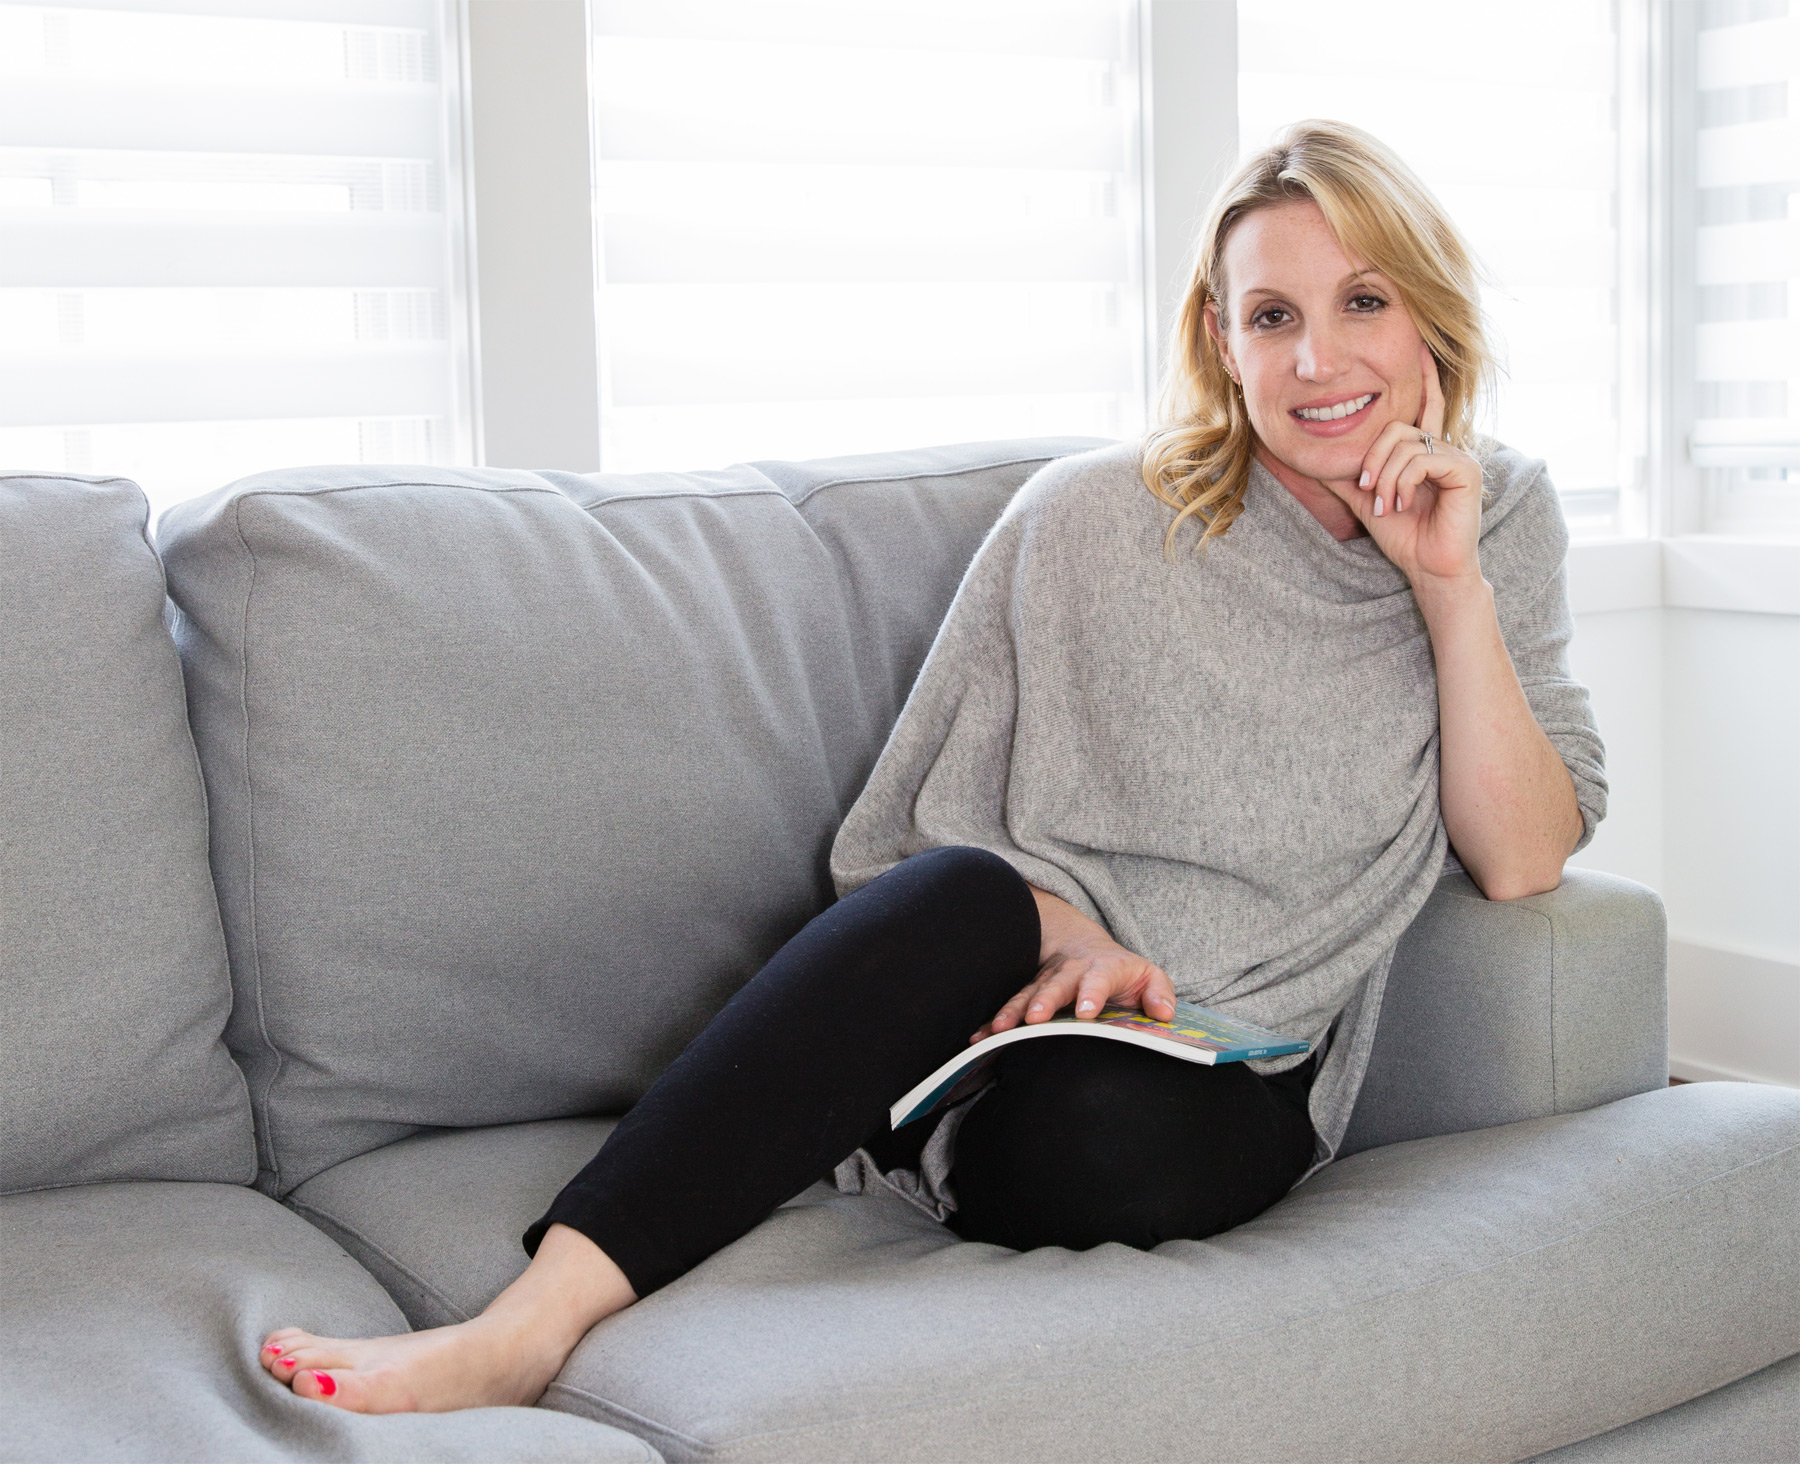 Jennifer Findley Reveals Her Dedication To Wellness Through Core Essences